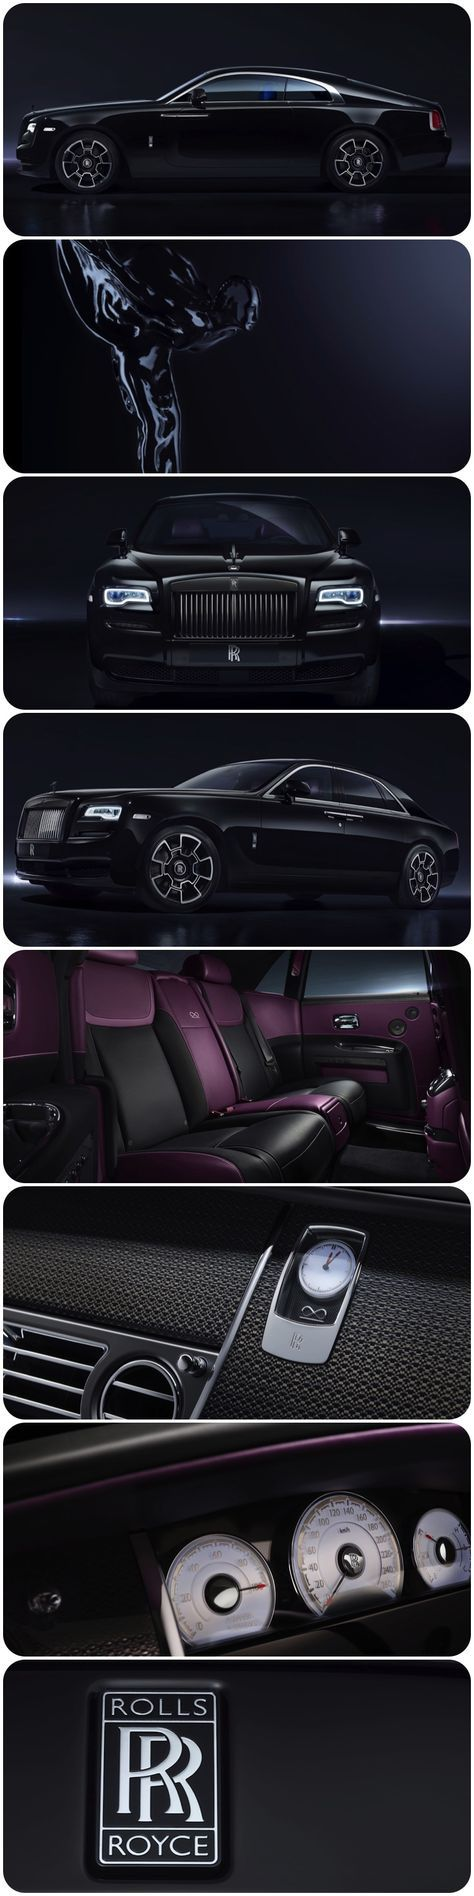 Black Badge - A New Rolls-Royce for the elusive, defiant people with attitude, the risk takers and disruptors who break the rules and laugh in the face of convention. @rollsroycecars #luxury #luxurybrands #blackbadge